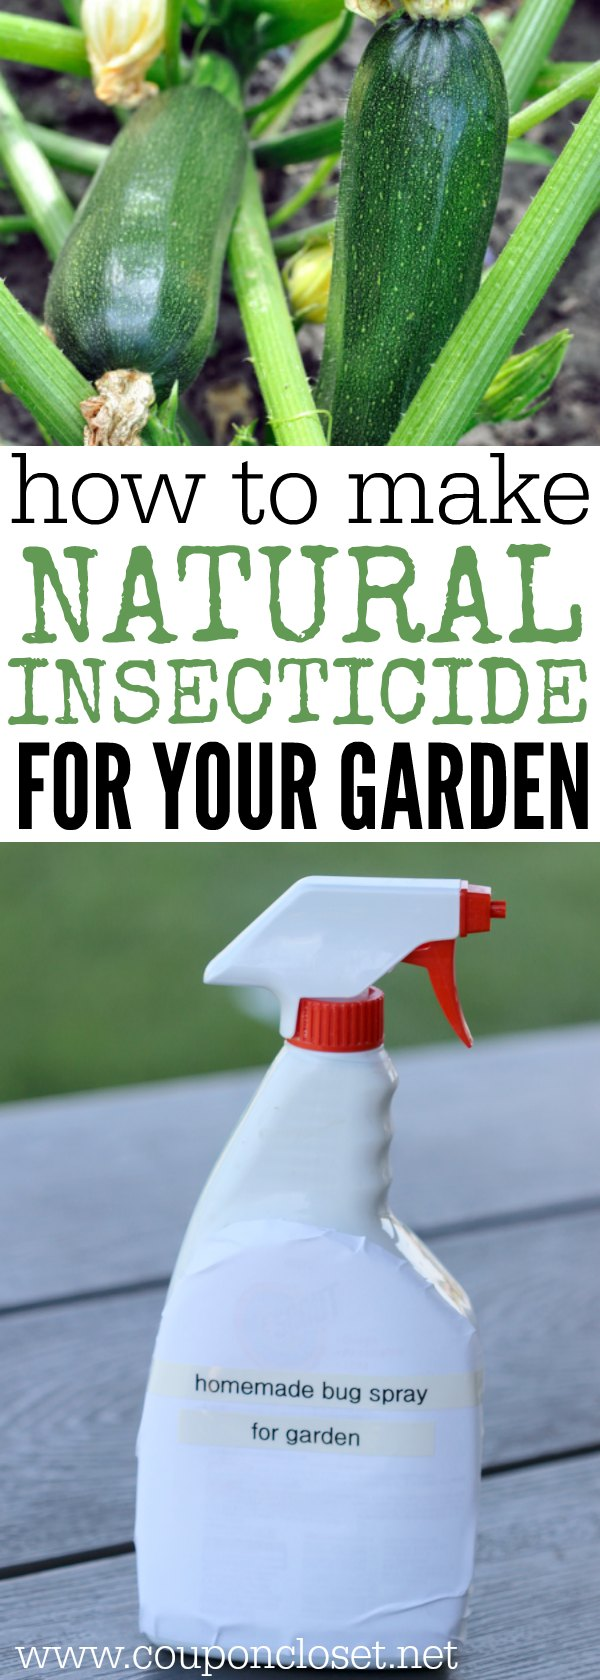 How To Make Natural Pesticides Homemade Insecticide